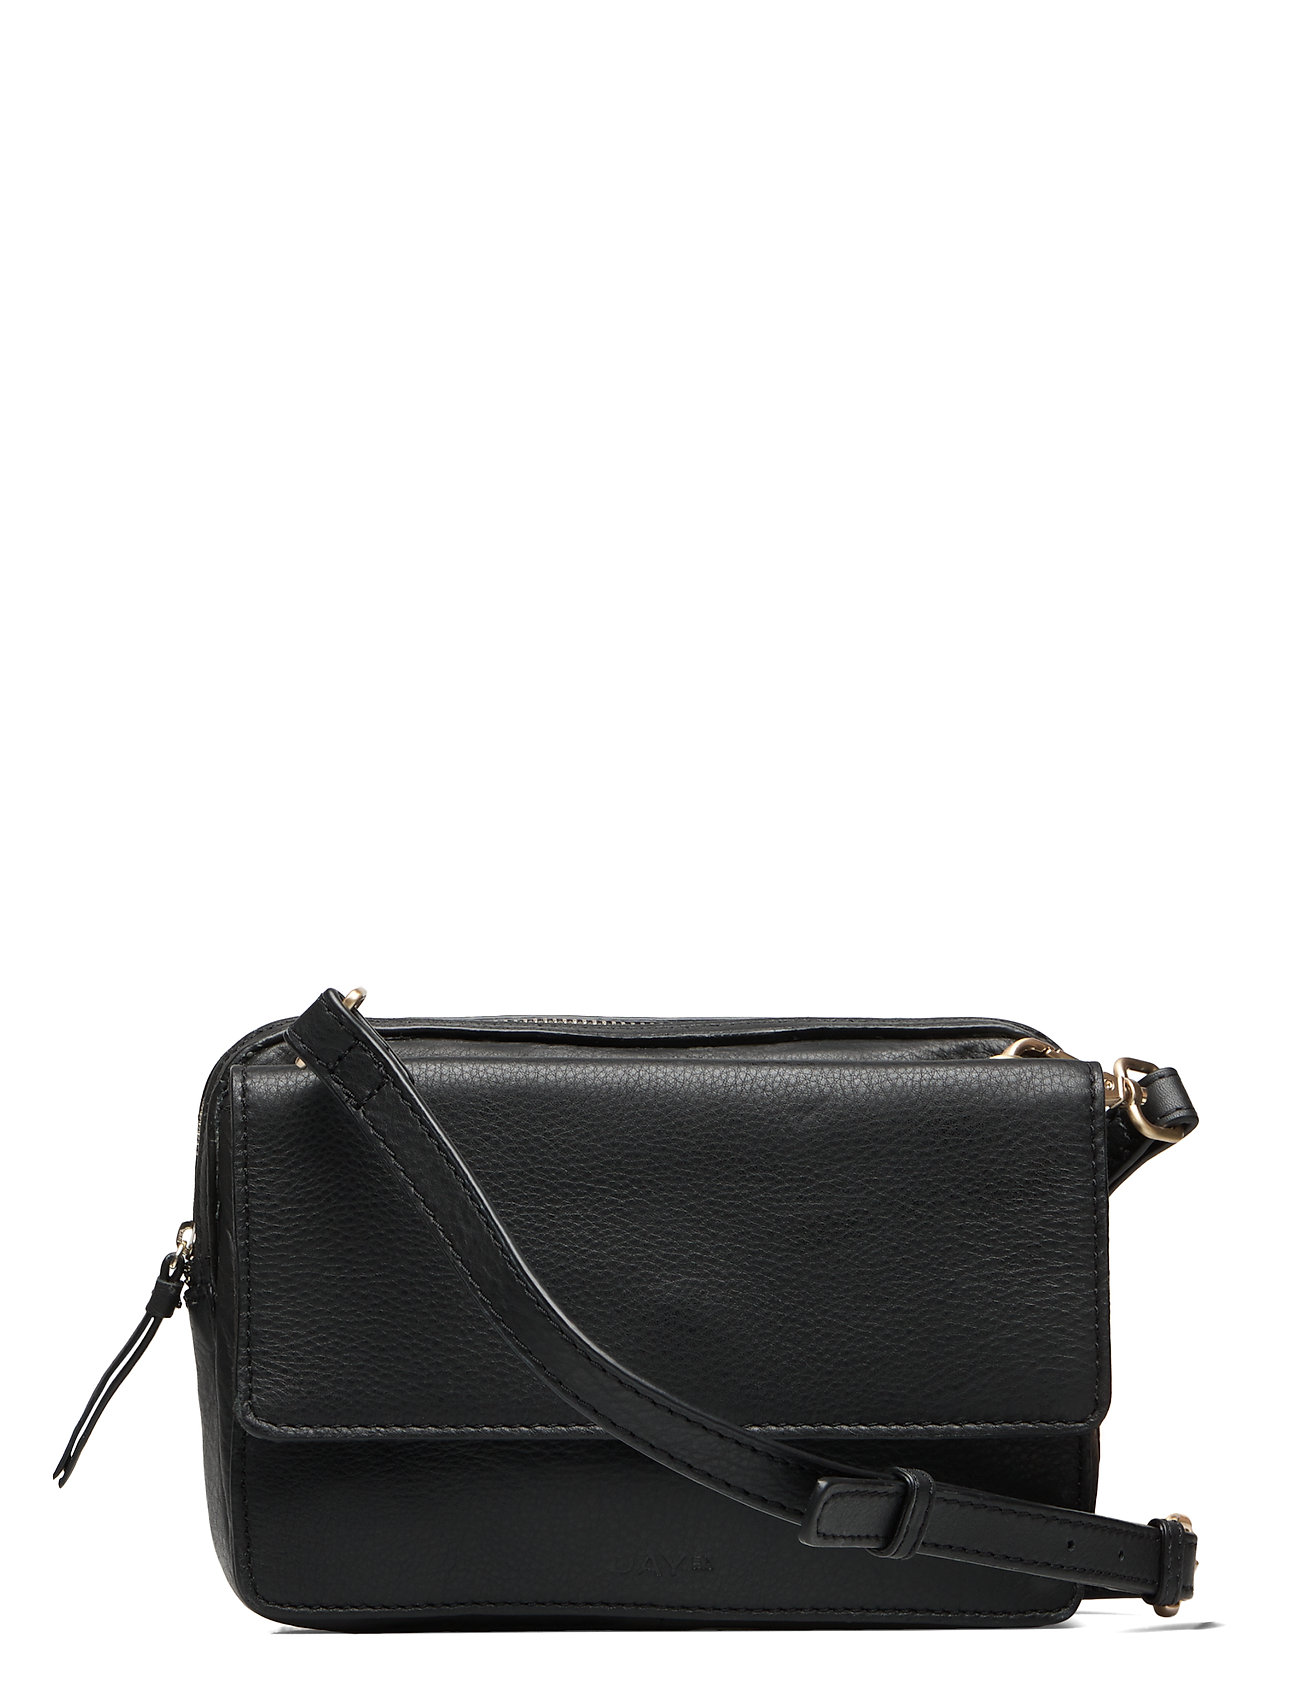 Image of Day Amsterdam Clutch Cb Bags Small Shoulder Bags - Crossbody Bags Sort DAY Et (3344406687)